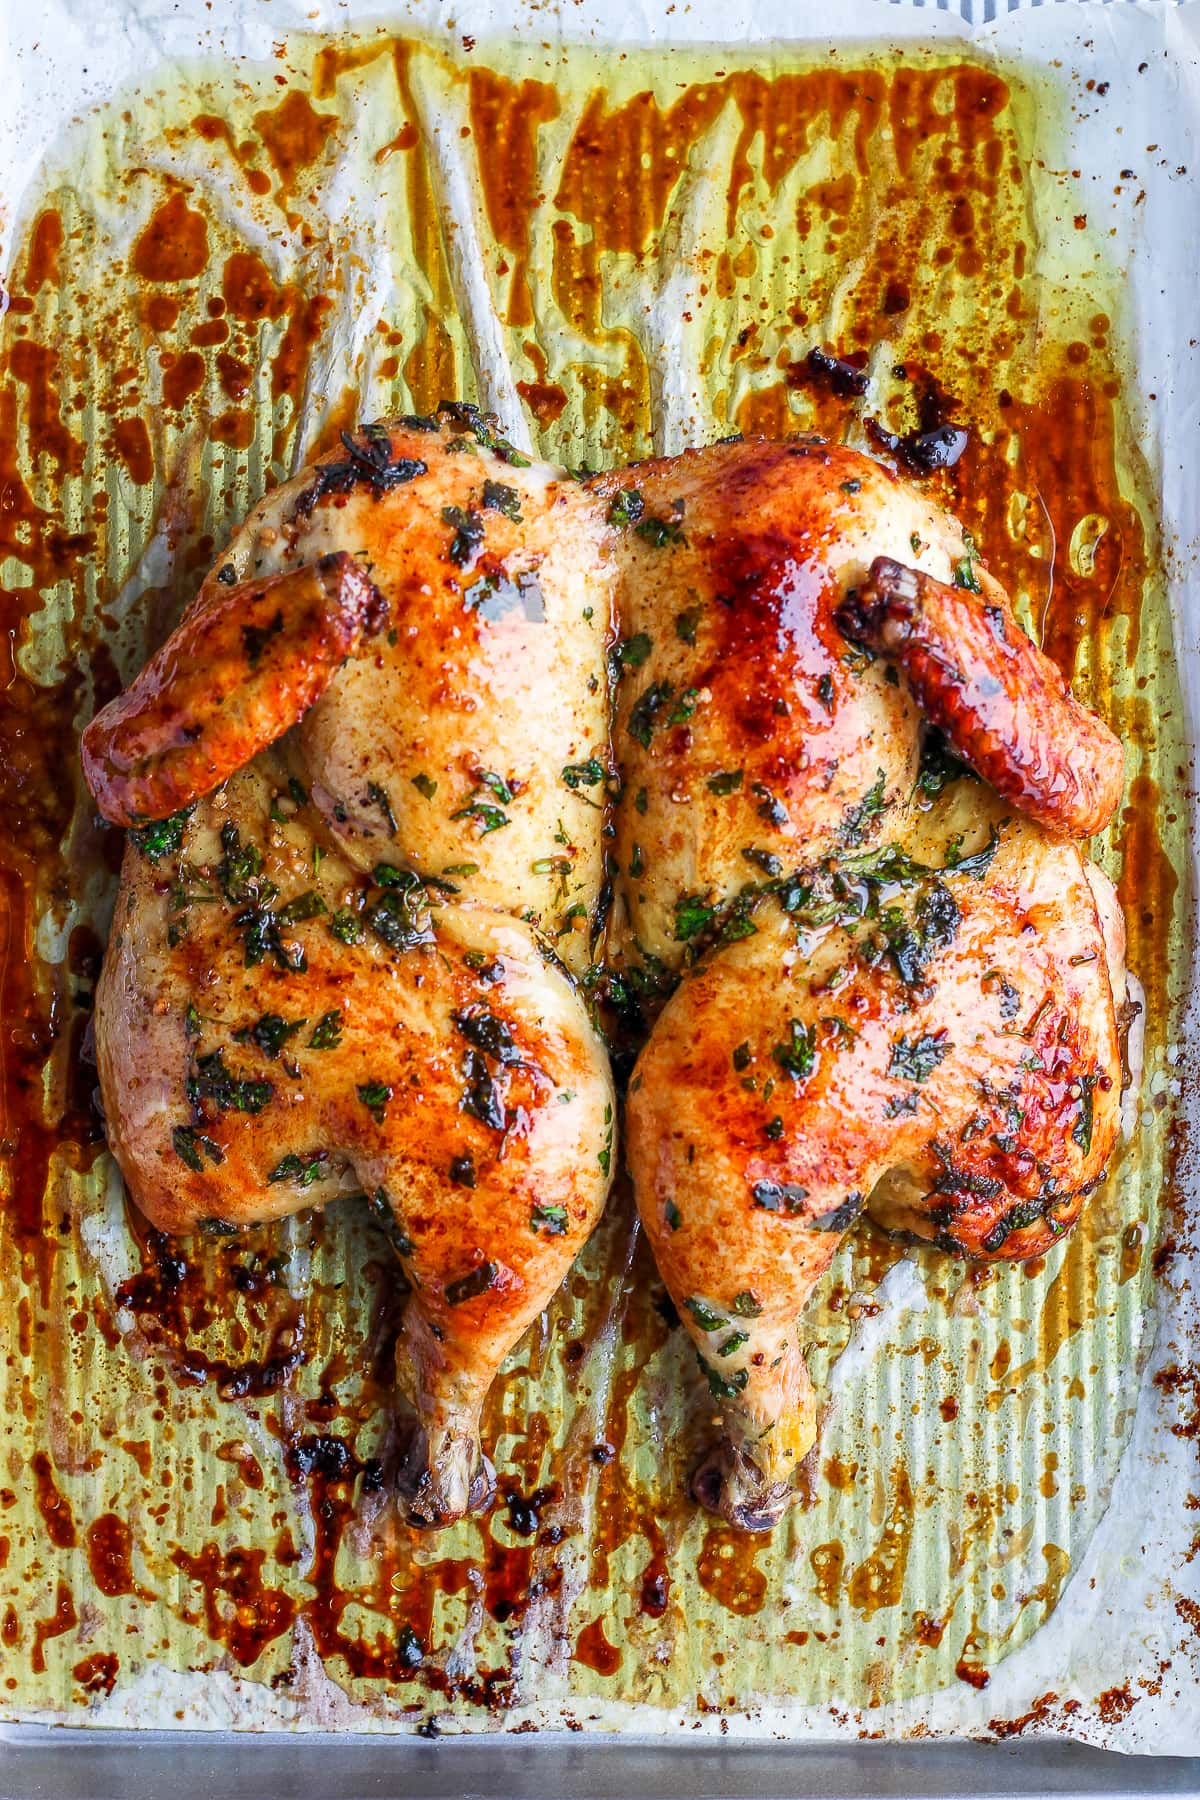 Sunday Dinner Butterflied Chicken - a quick and easy way to make a delicious chicken every time! #whole30 #paleo